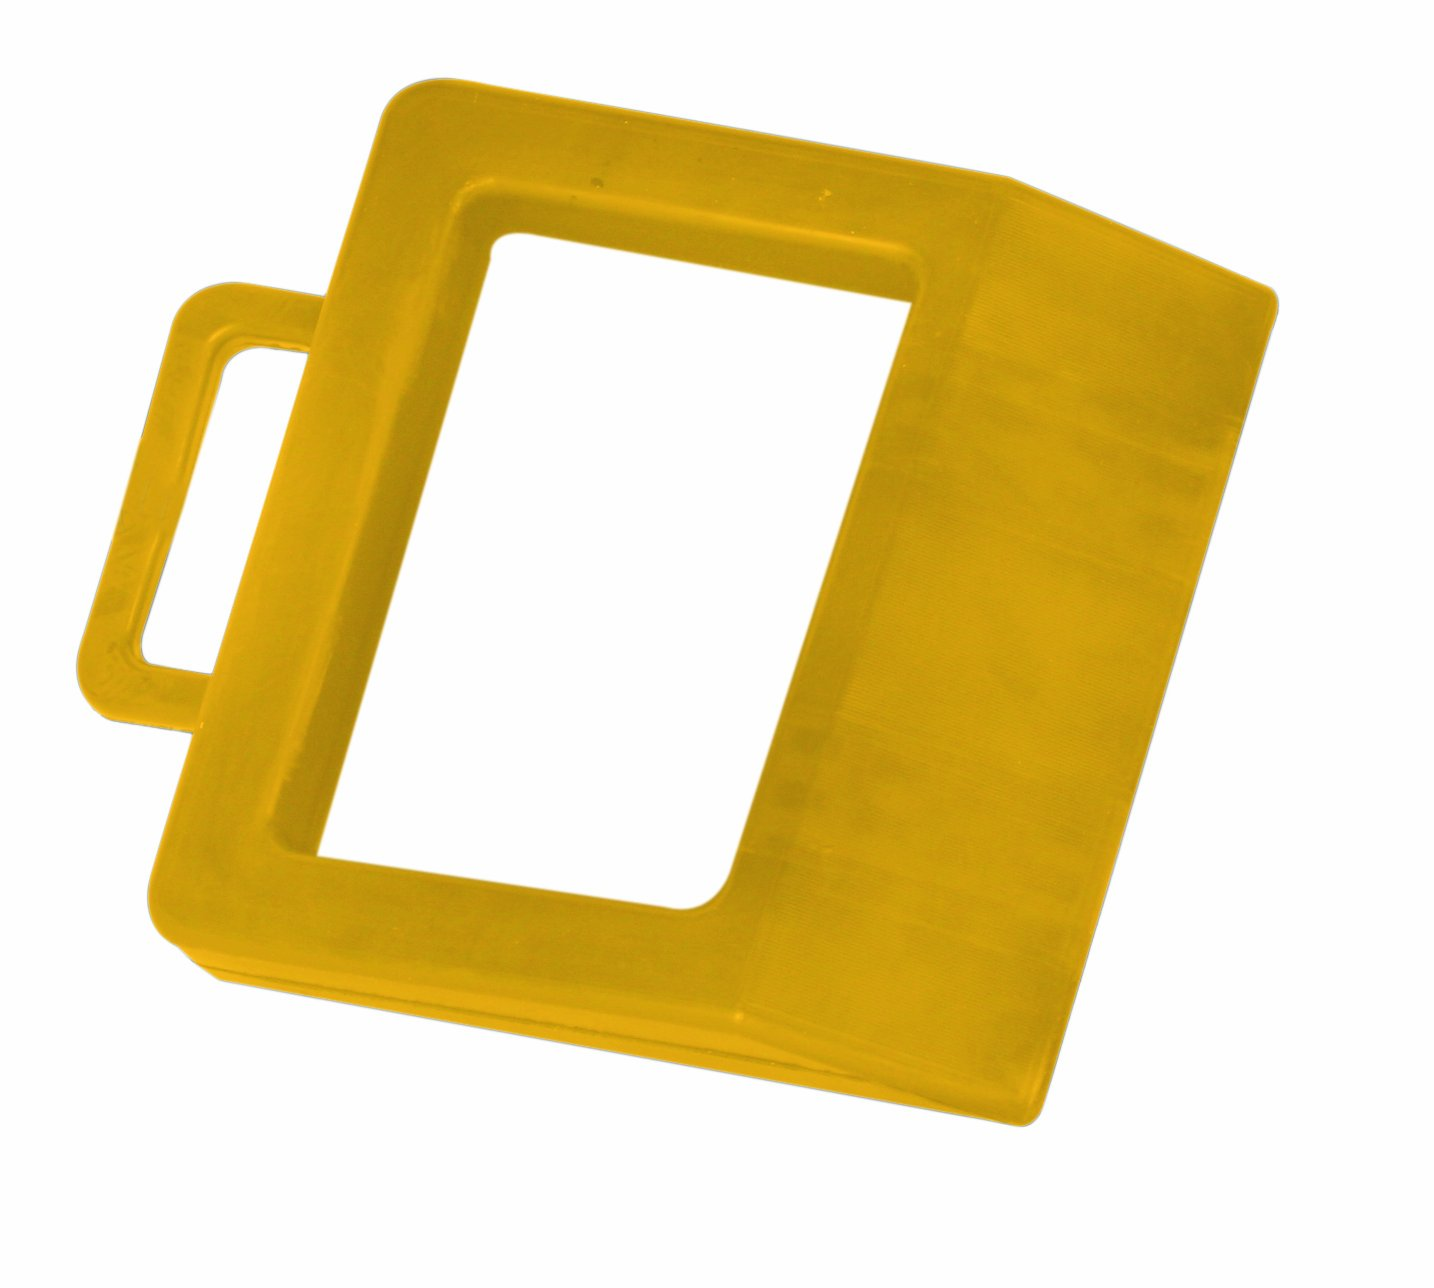 Wesco 272175 Hard Rubber High Visibility Pallet Truck Chock, 11-3/4'' Width x 2'' Height x 14'' Depth, Yellow